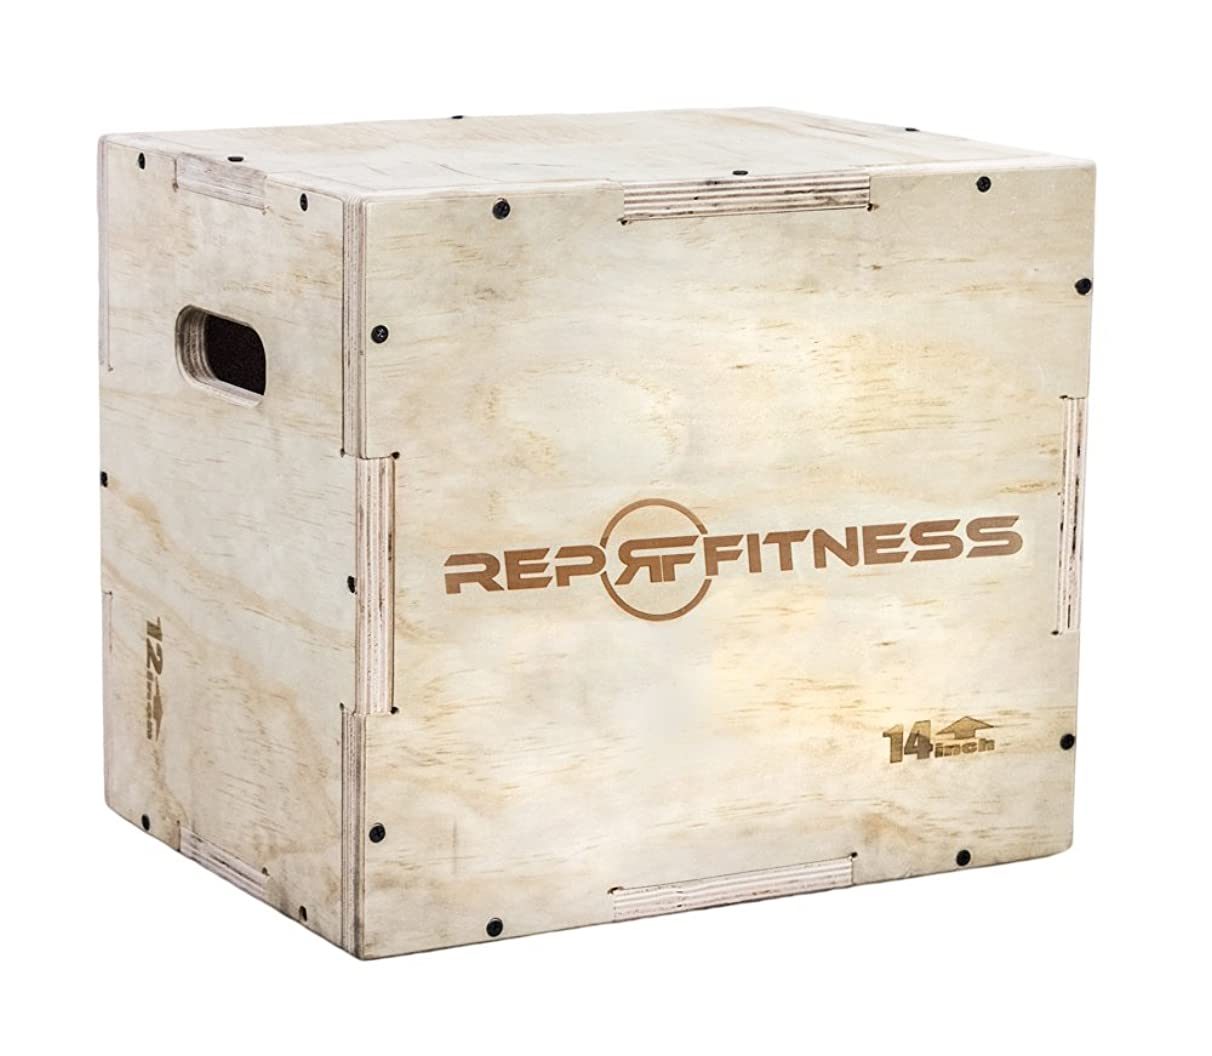 Rep Fitness 3 in 1 Wood Plyometric Box for Jump Training and Conditioning 30/24/20, 24/20/16, 20/18/16, 16/14/12